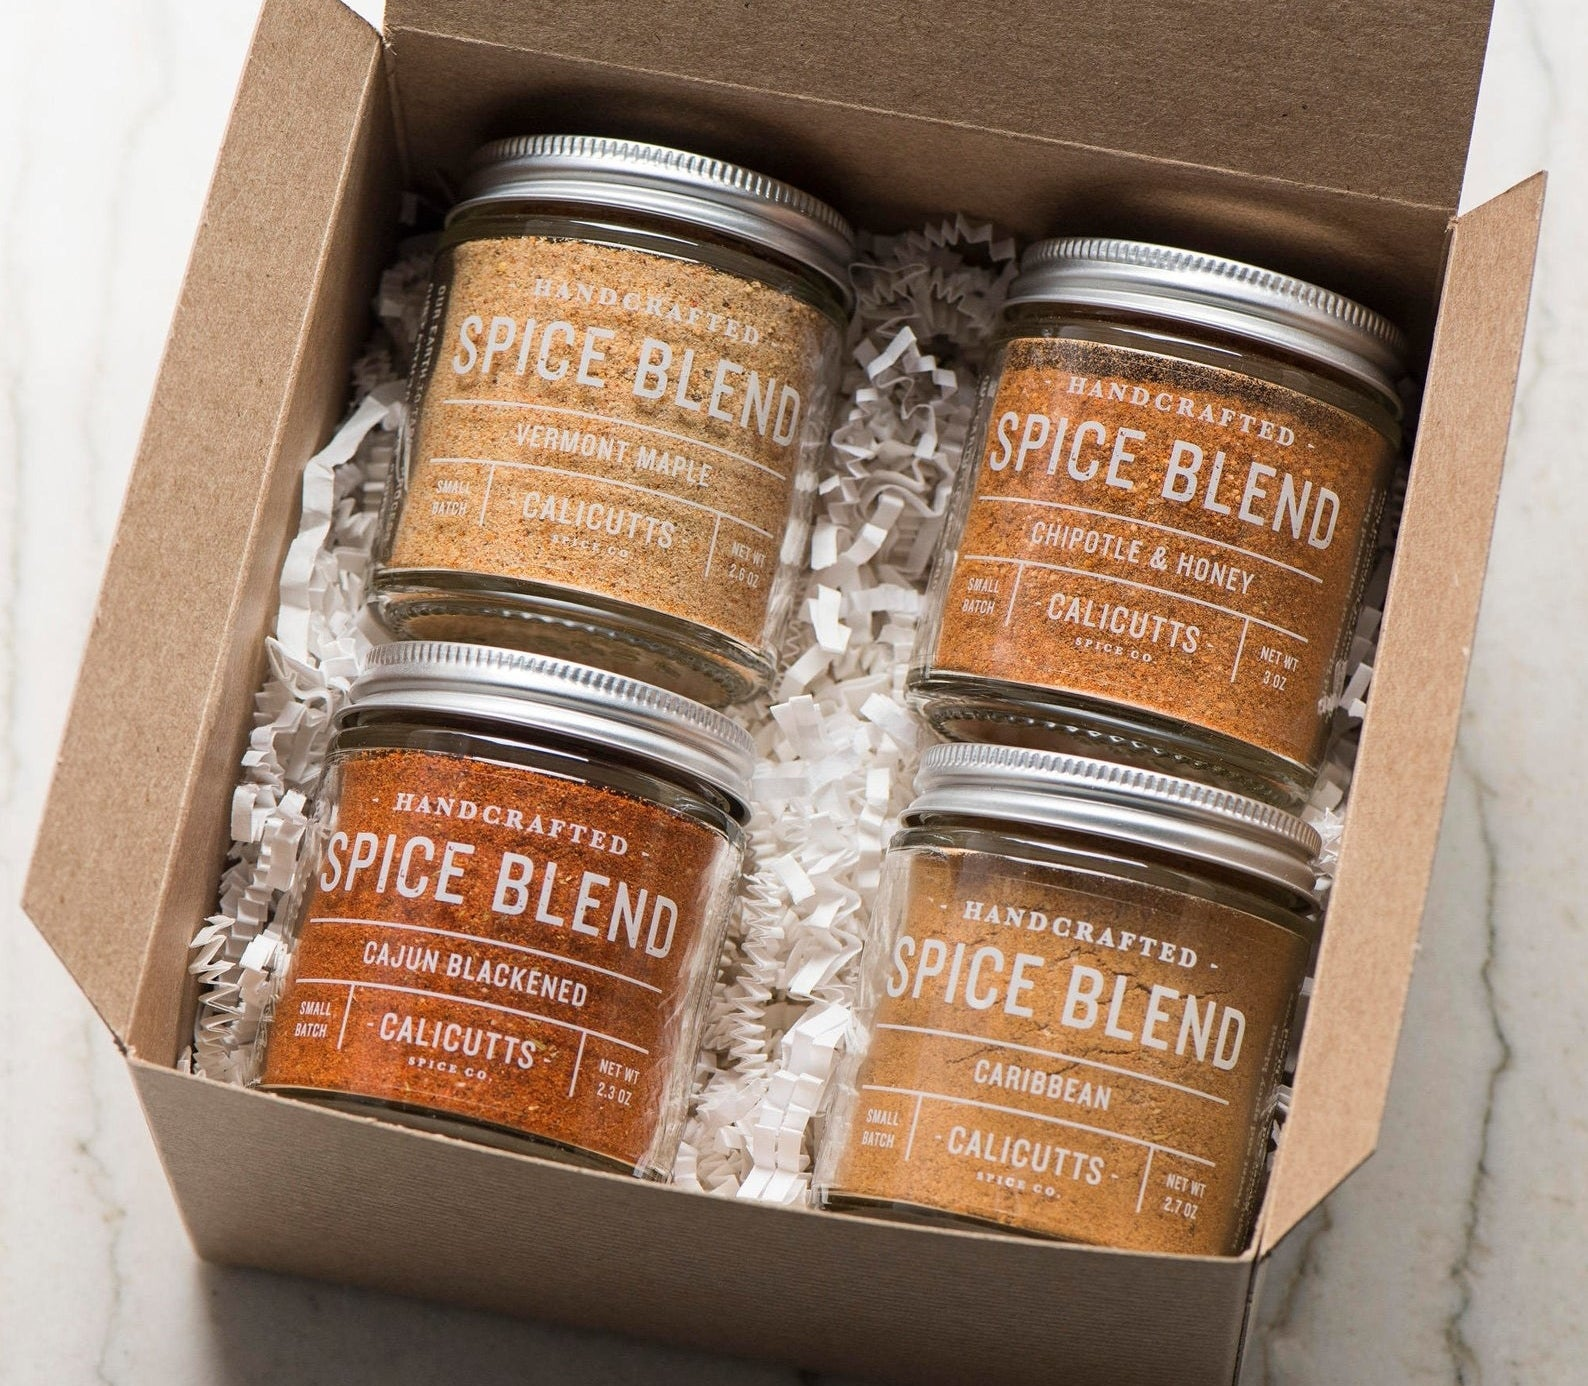 the four jars of spices that come in the pack — vermont maple, chipotle and honey, cajun blackened, and caribbean